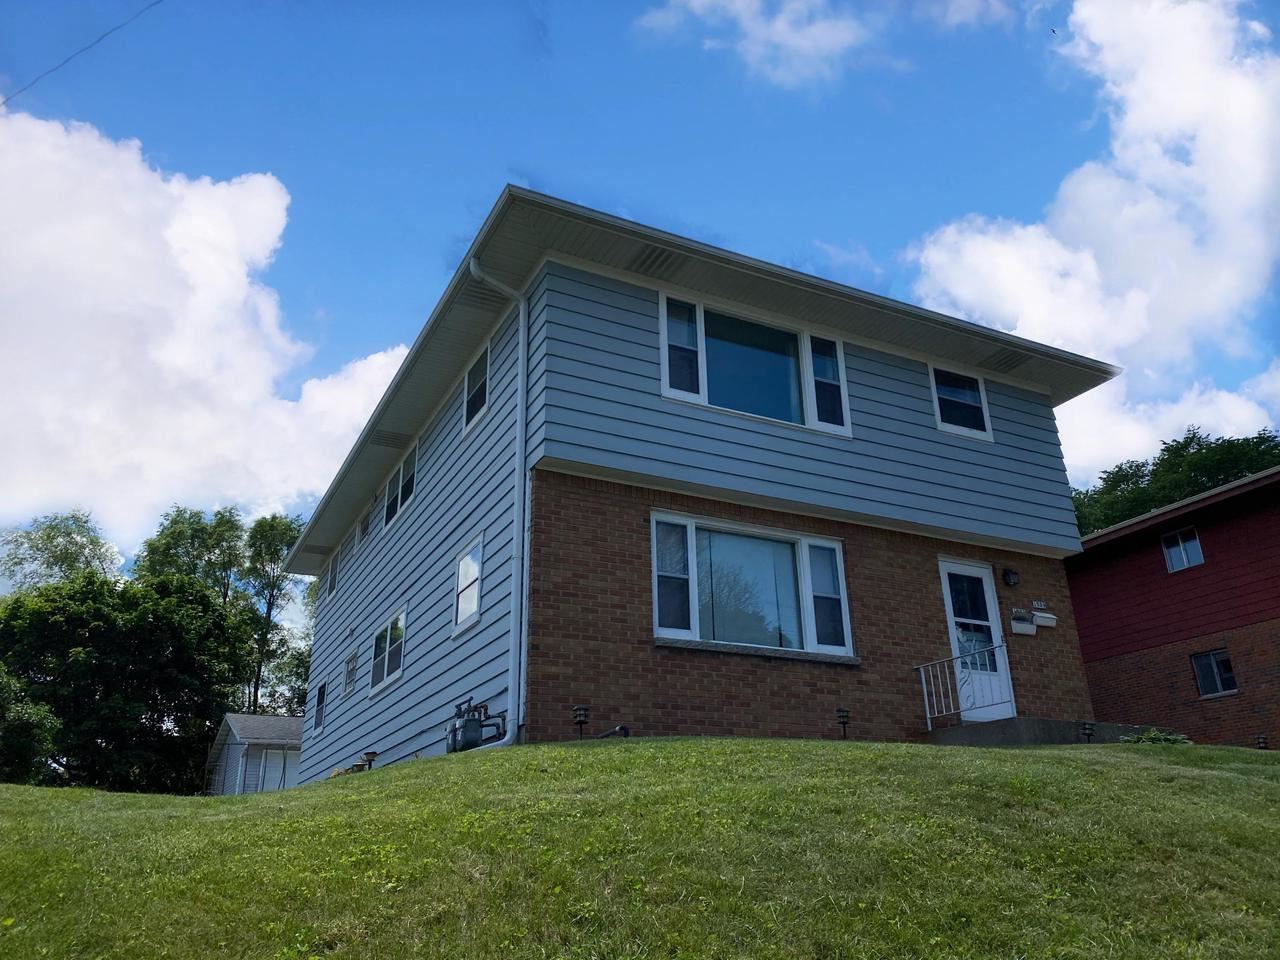 1007 Summit Ave #1009, Waukesha, WI 53188 - MLS#: 1696194